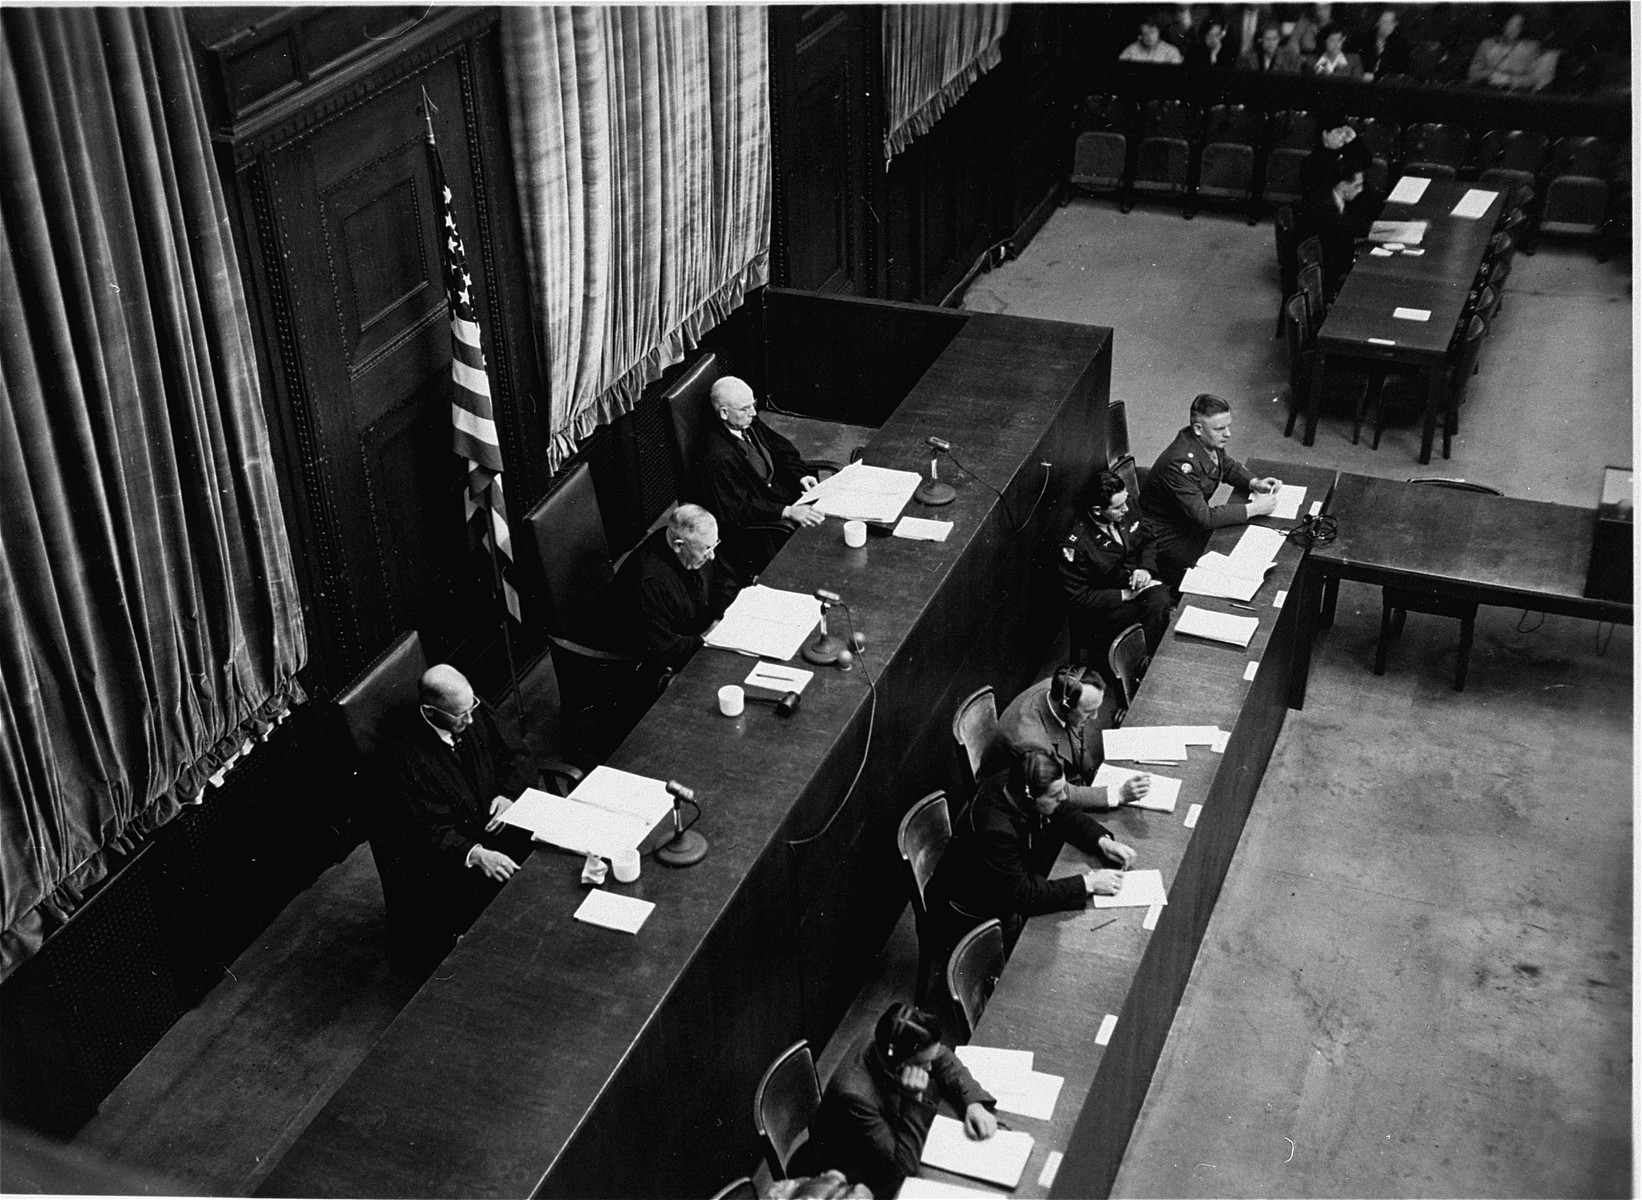 The members of the Tribunal listen to the proceedings of the High Command Case.    Seated from left to right are:  Winfield B. Hale, Presiding Justice John C. Young, and Justin W. Harding.